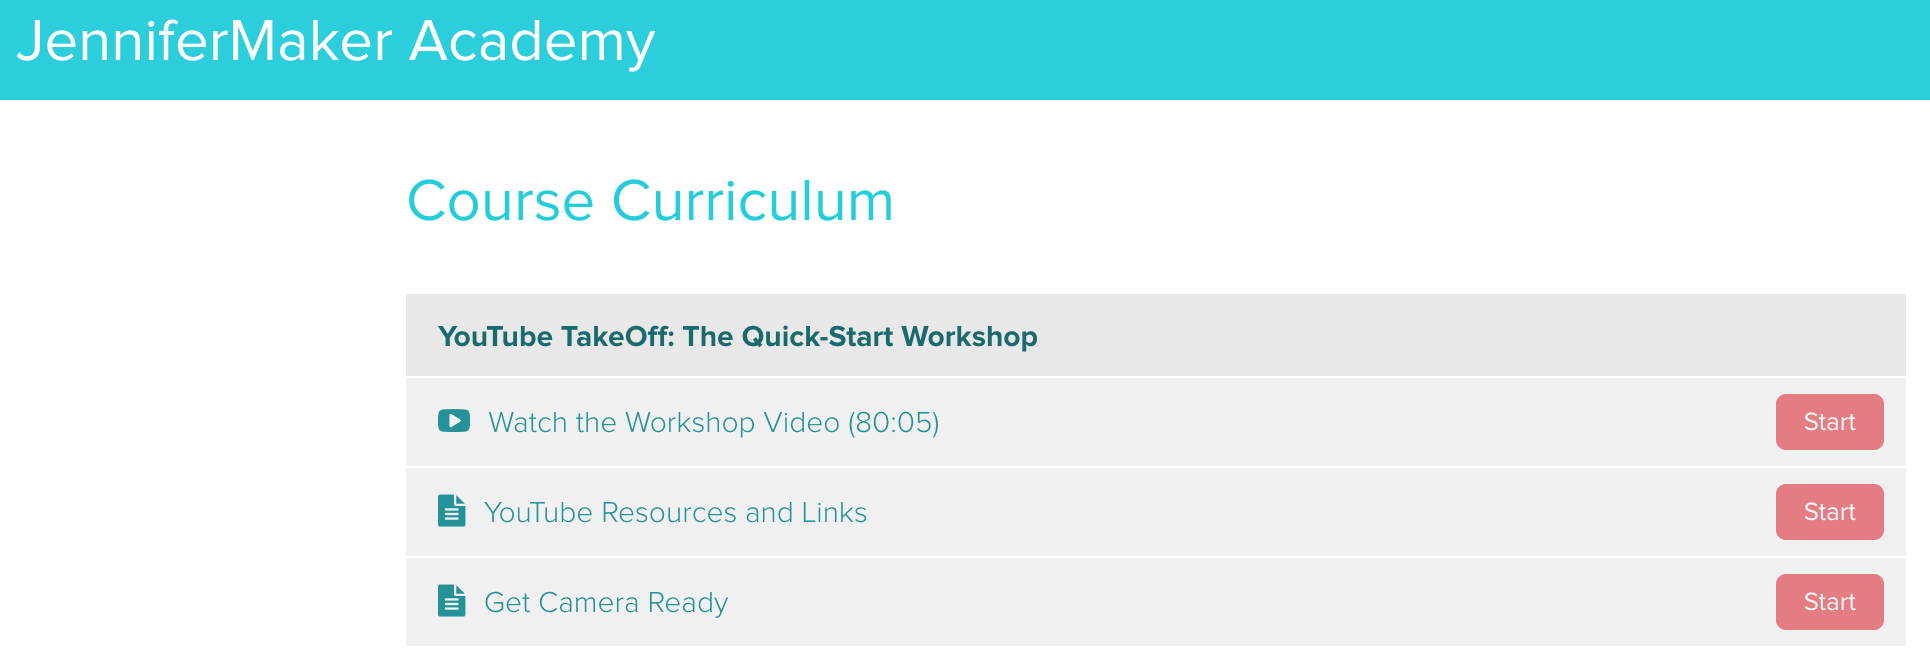 YouTube Takeoff: The Quick-Start Workshop